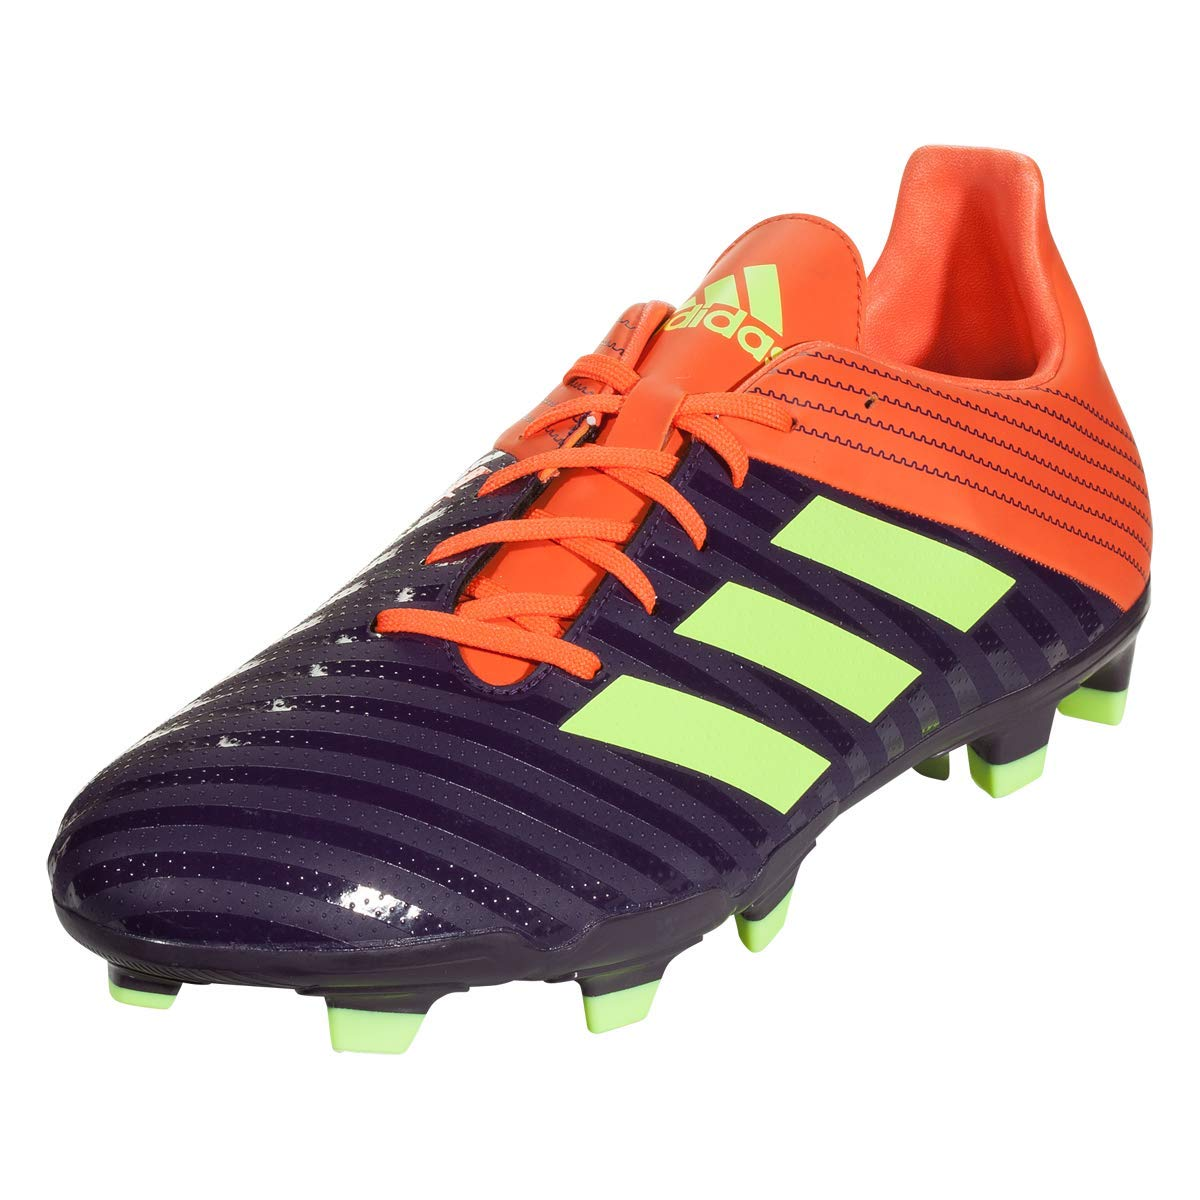 adidas Malice FG Rugby Boots, Purple, US 9 by adidas